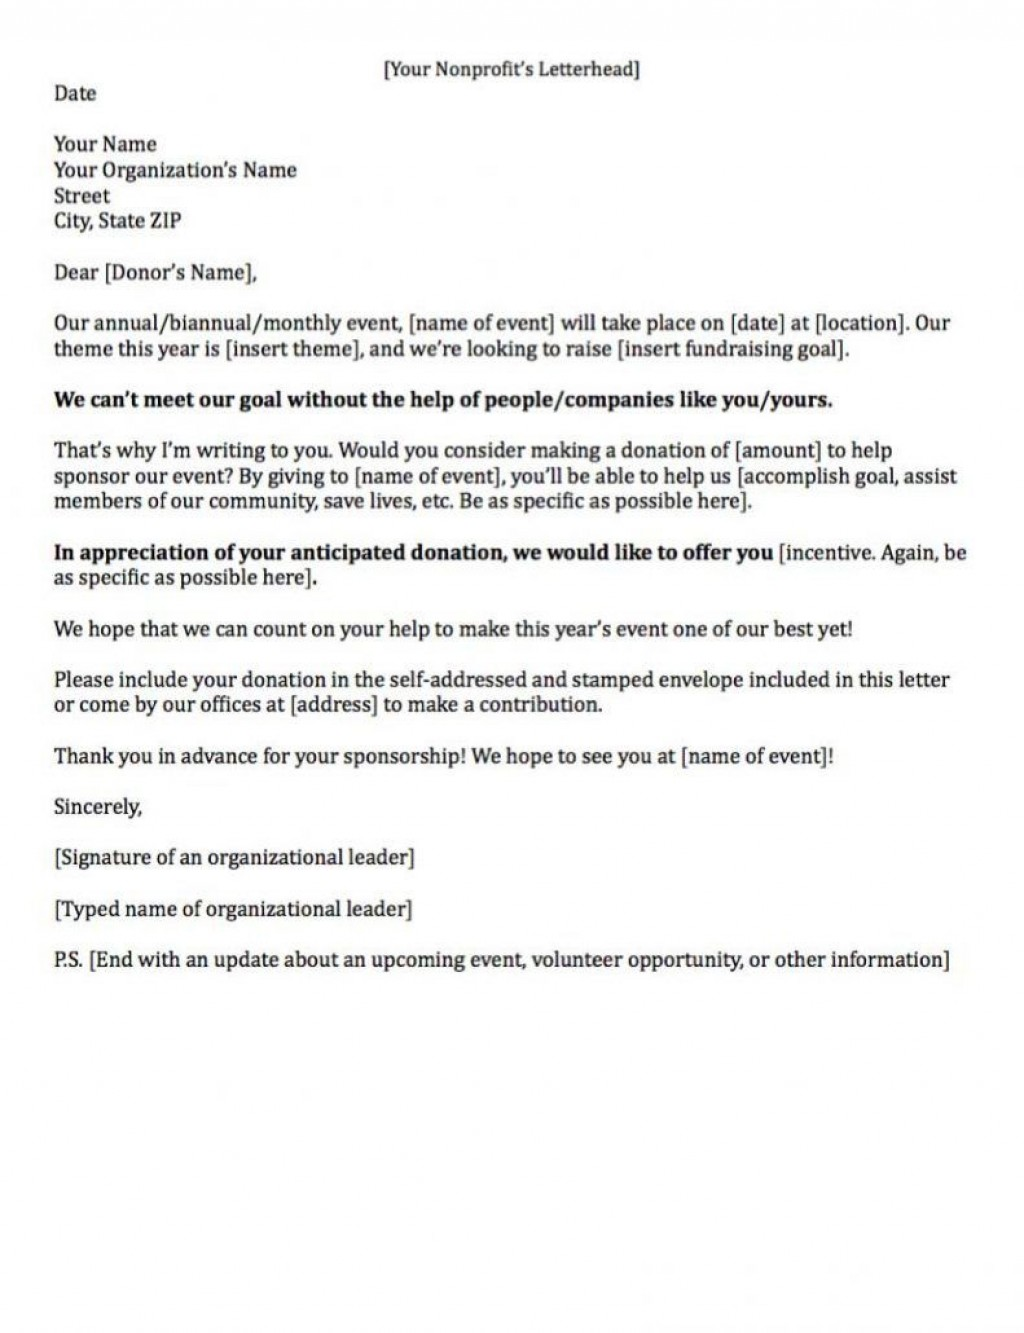 008 Archaicawful Fund Raising Letter Template Idea  Templates Example Of Fundraising Appeal For Mission Trip UkLarge